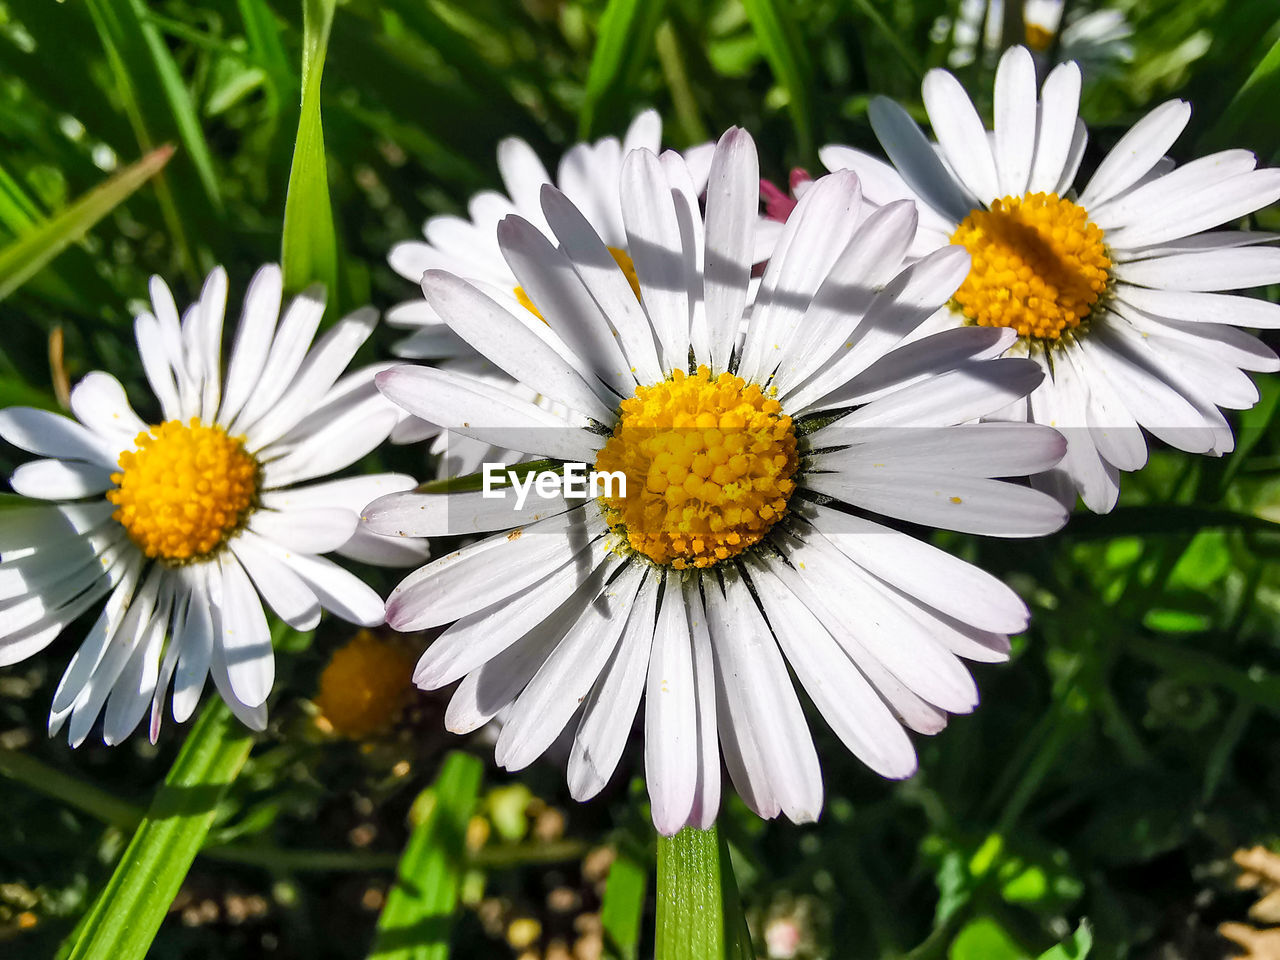 flowering plant, flower, vulnerability, fragility, plant, freshness, petal, growth, beauty in nature, flower head, inflorescence, close-up, white color, focus on foreground, daisy, pollen, nature, day, yellow, no people, outdoors, gazania